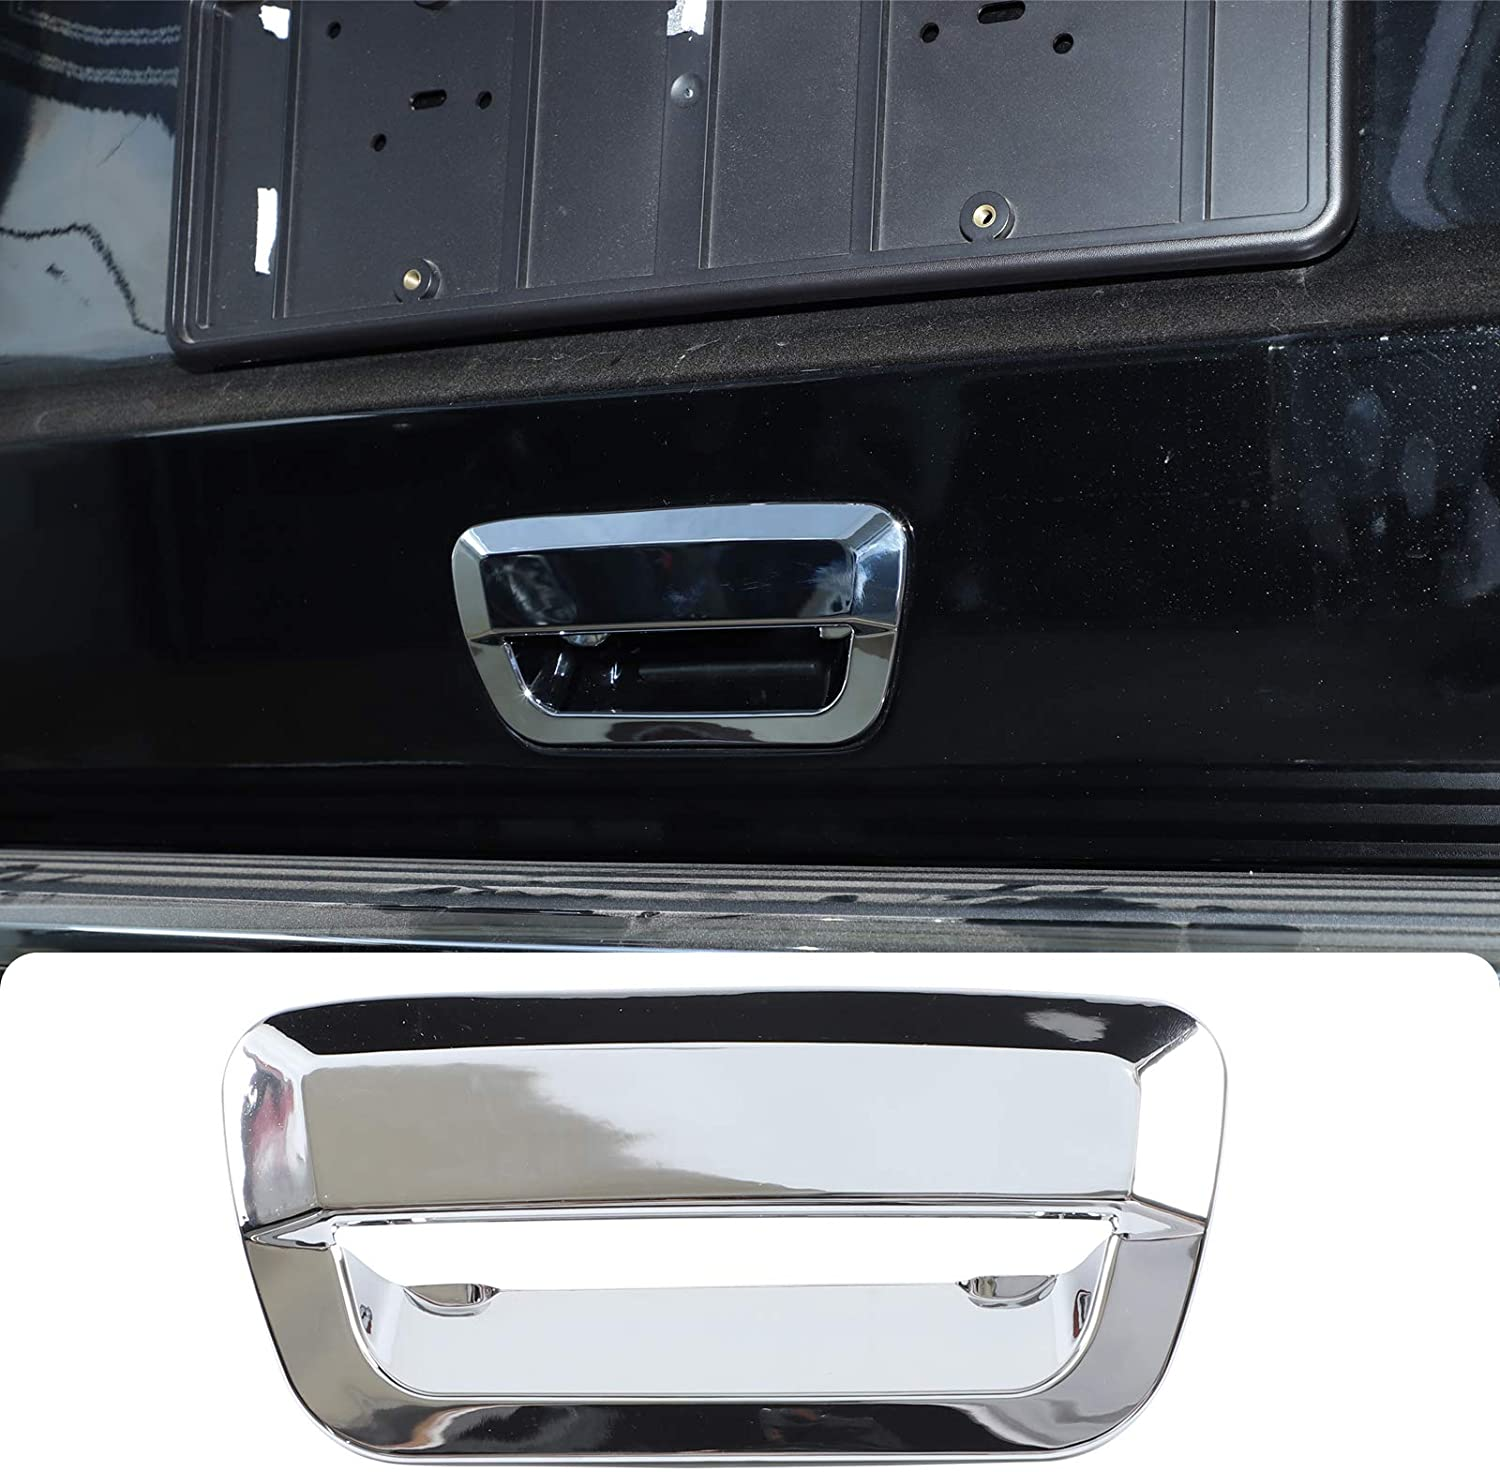 CheroCar for Jeep Grand Cherokee Tailgate Handle Insters Cover Rear Trunk Door Handle Trim for Jeep Grand Cherokee 2014-2020, Exterior Accessories, Chrome